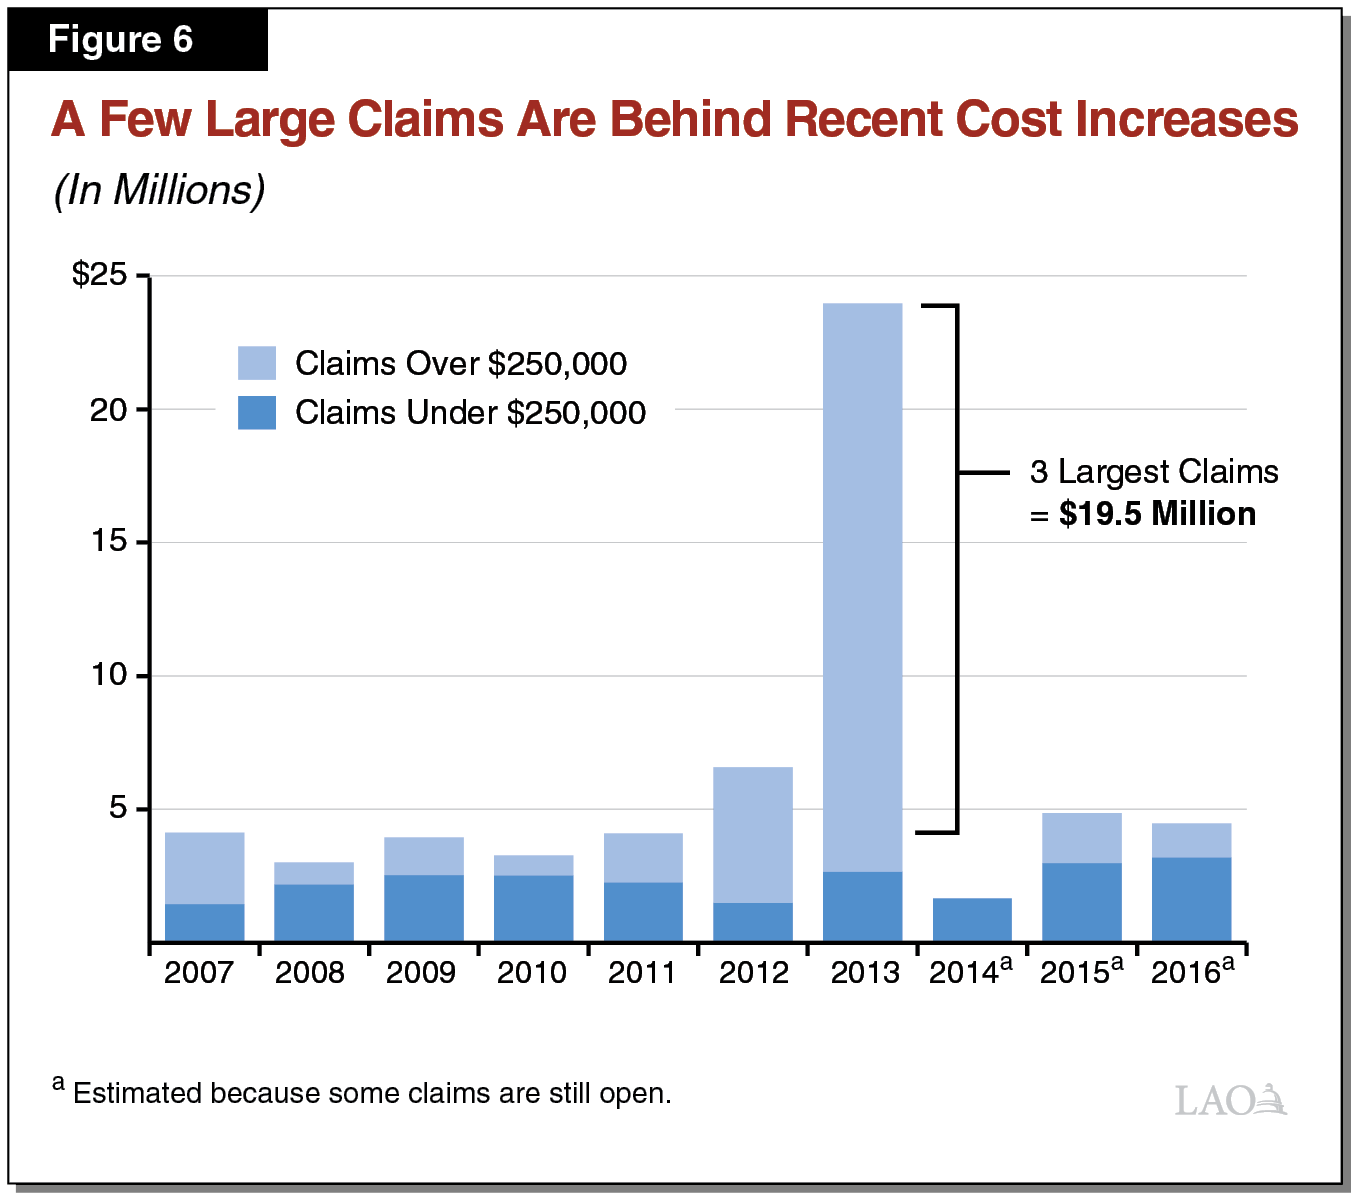 Figure 6 - A Few Large Claims Are Behind Recent Cost Increases